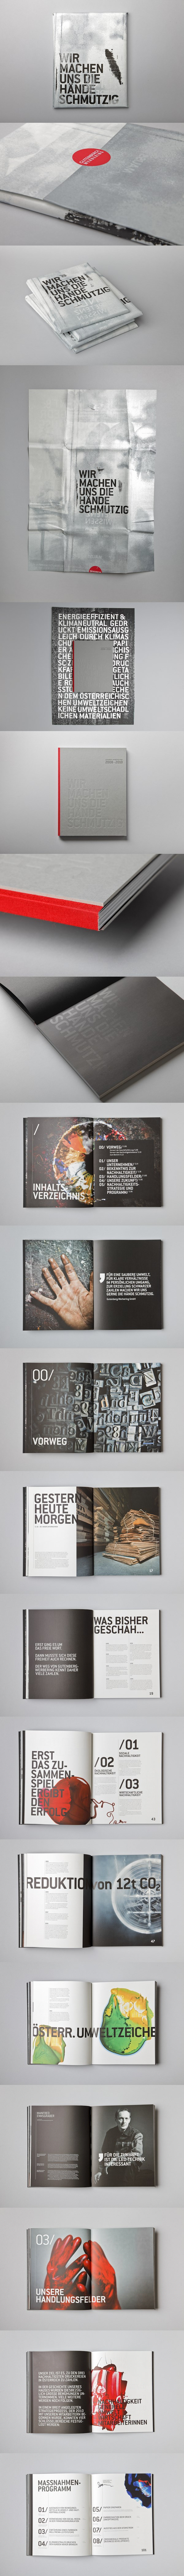 SUSTAINABILITY REPORT    via  http://www.behance.net/gallery/SUSTAINABILITY-REPORT/3332485